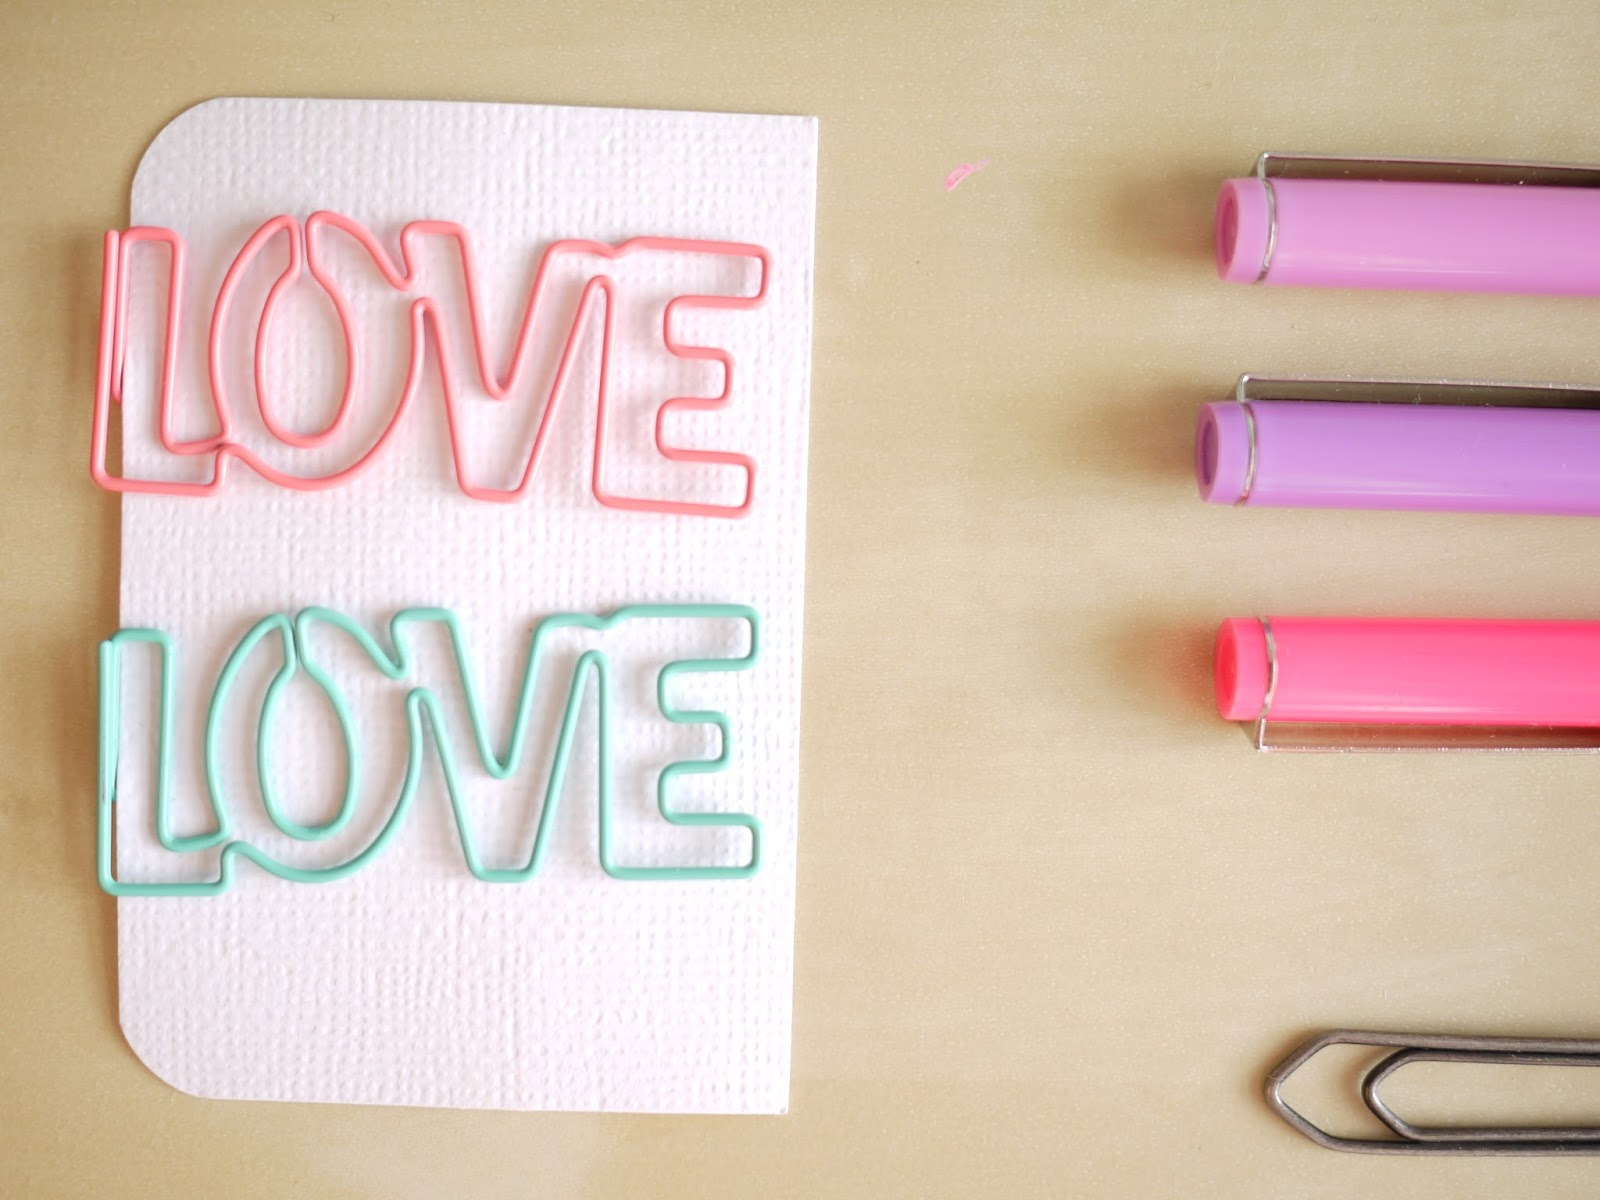 LOVE paperclips